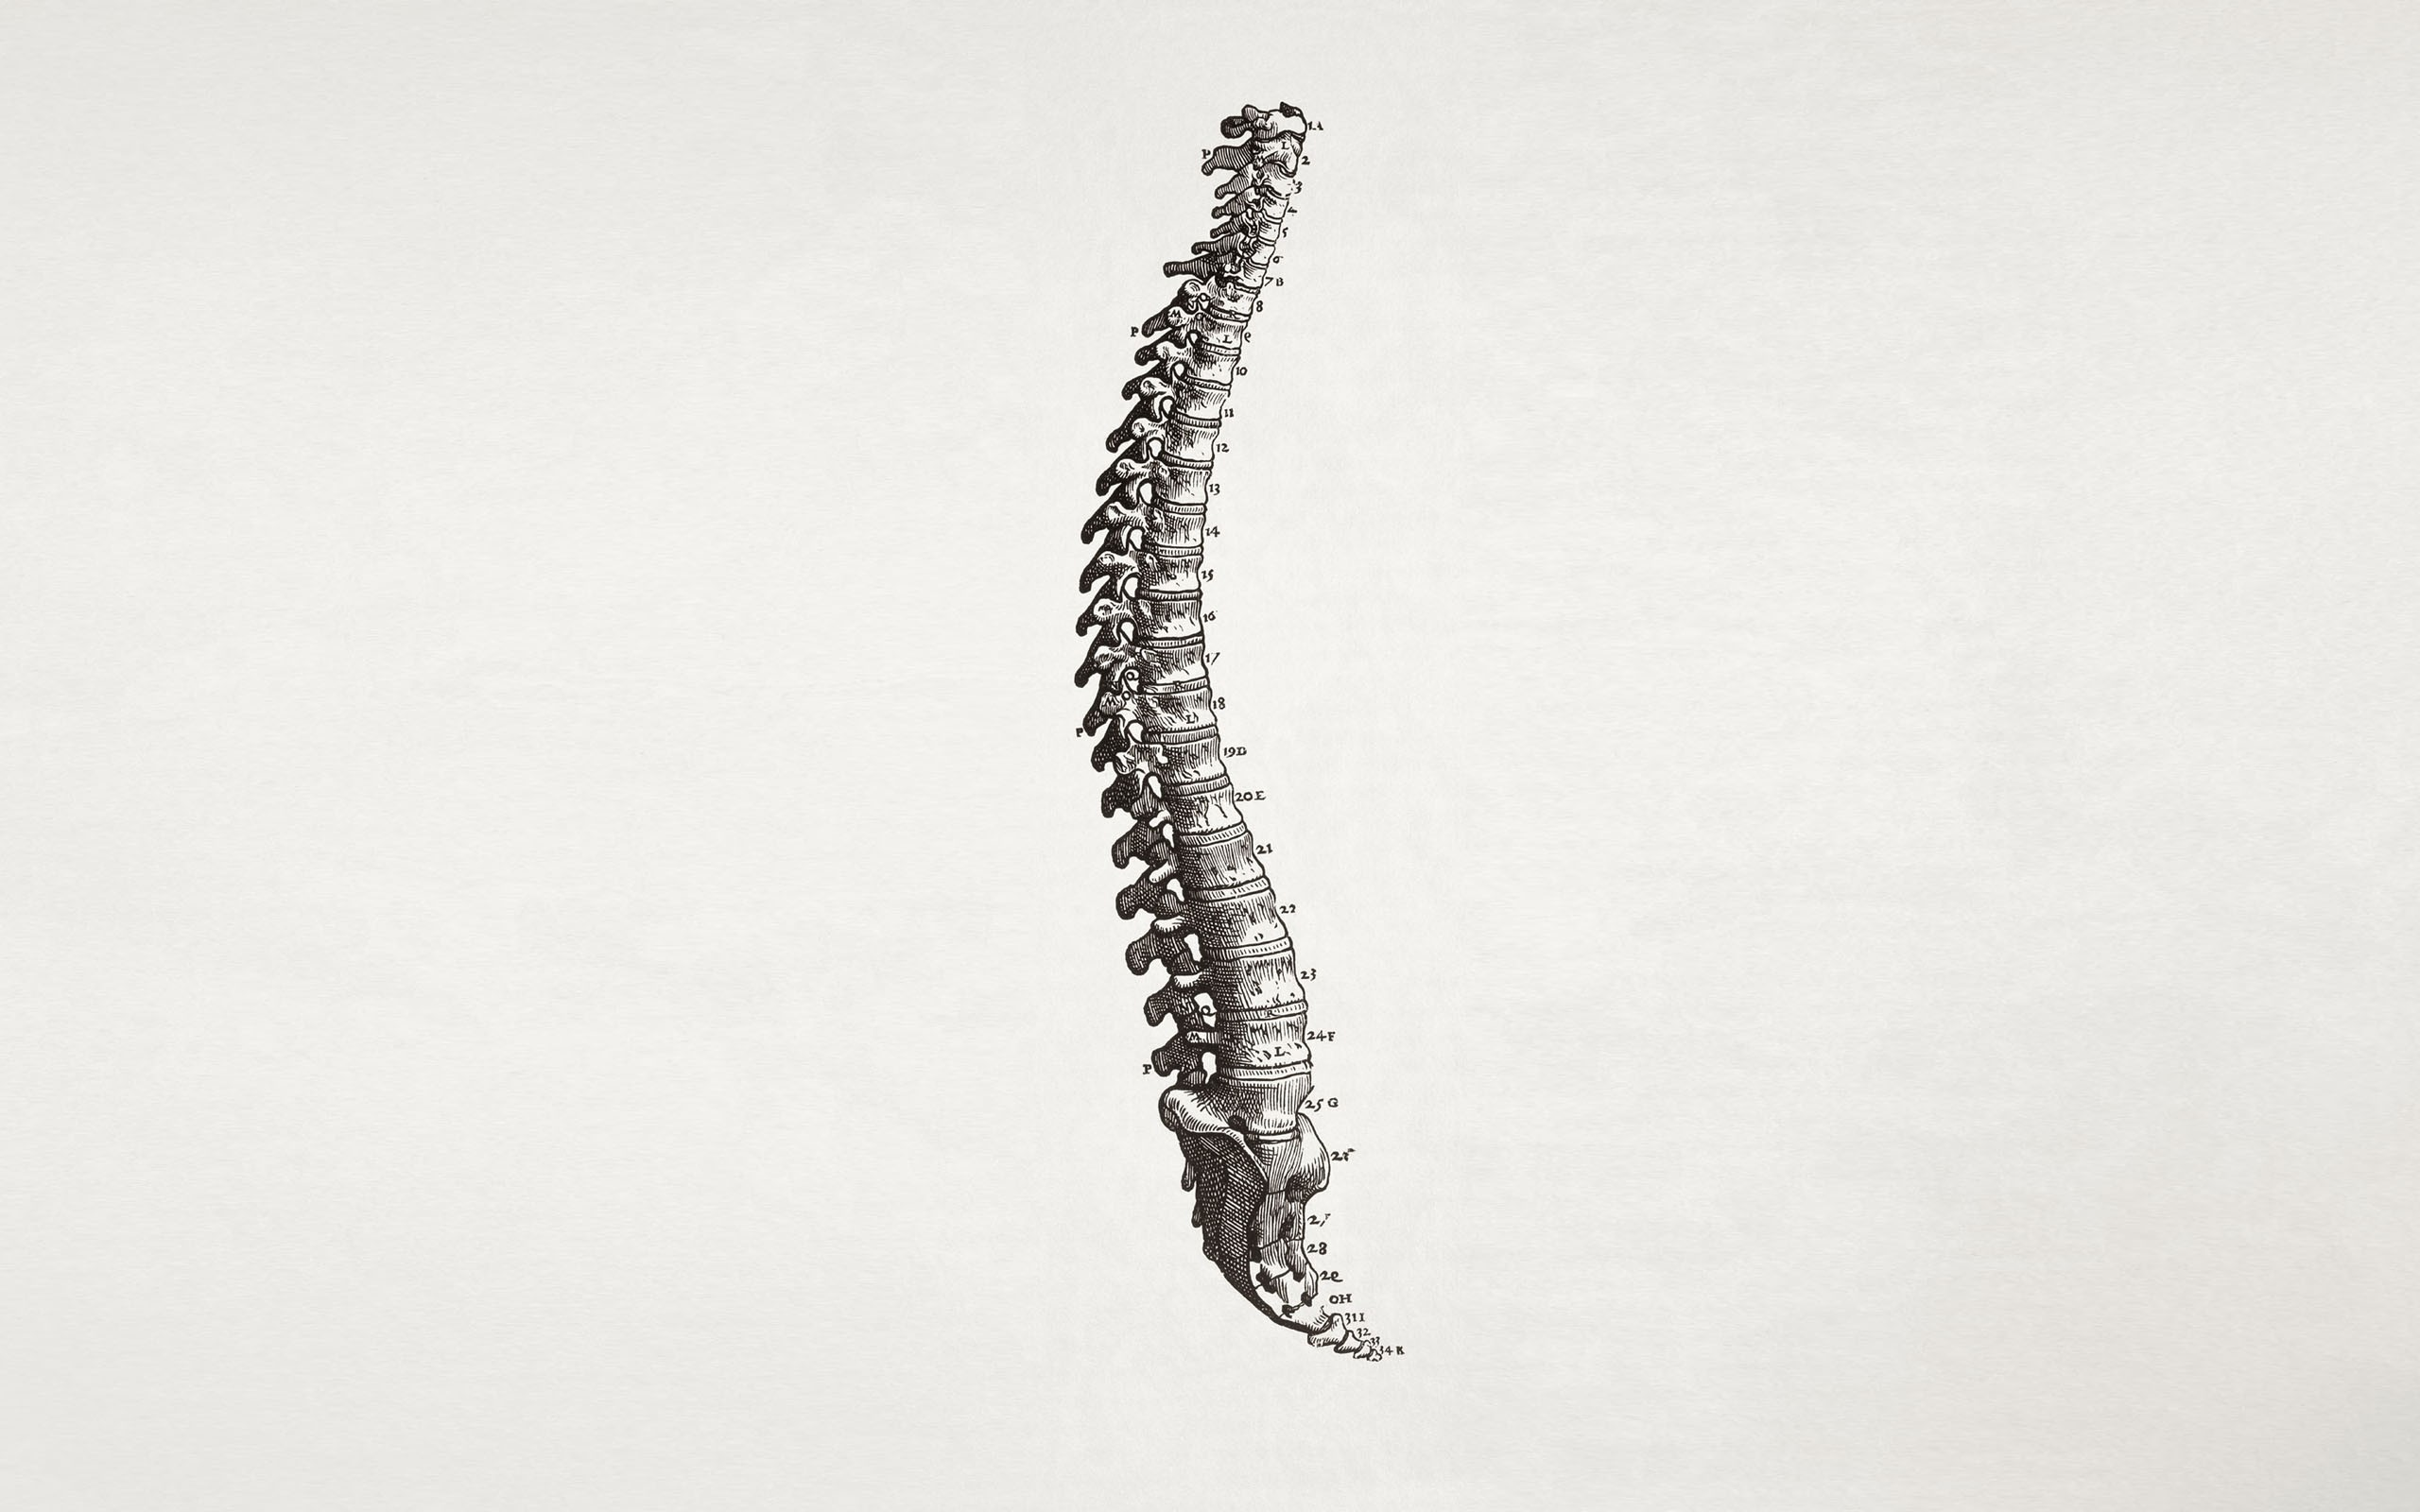 Nature Full Hd 3d Wallpapers 1920x1080 Spine Simple Background Minimalism Bones Medicine